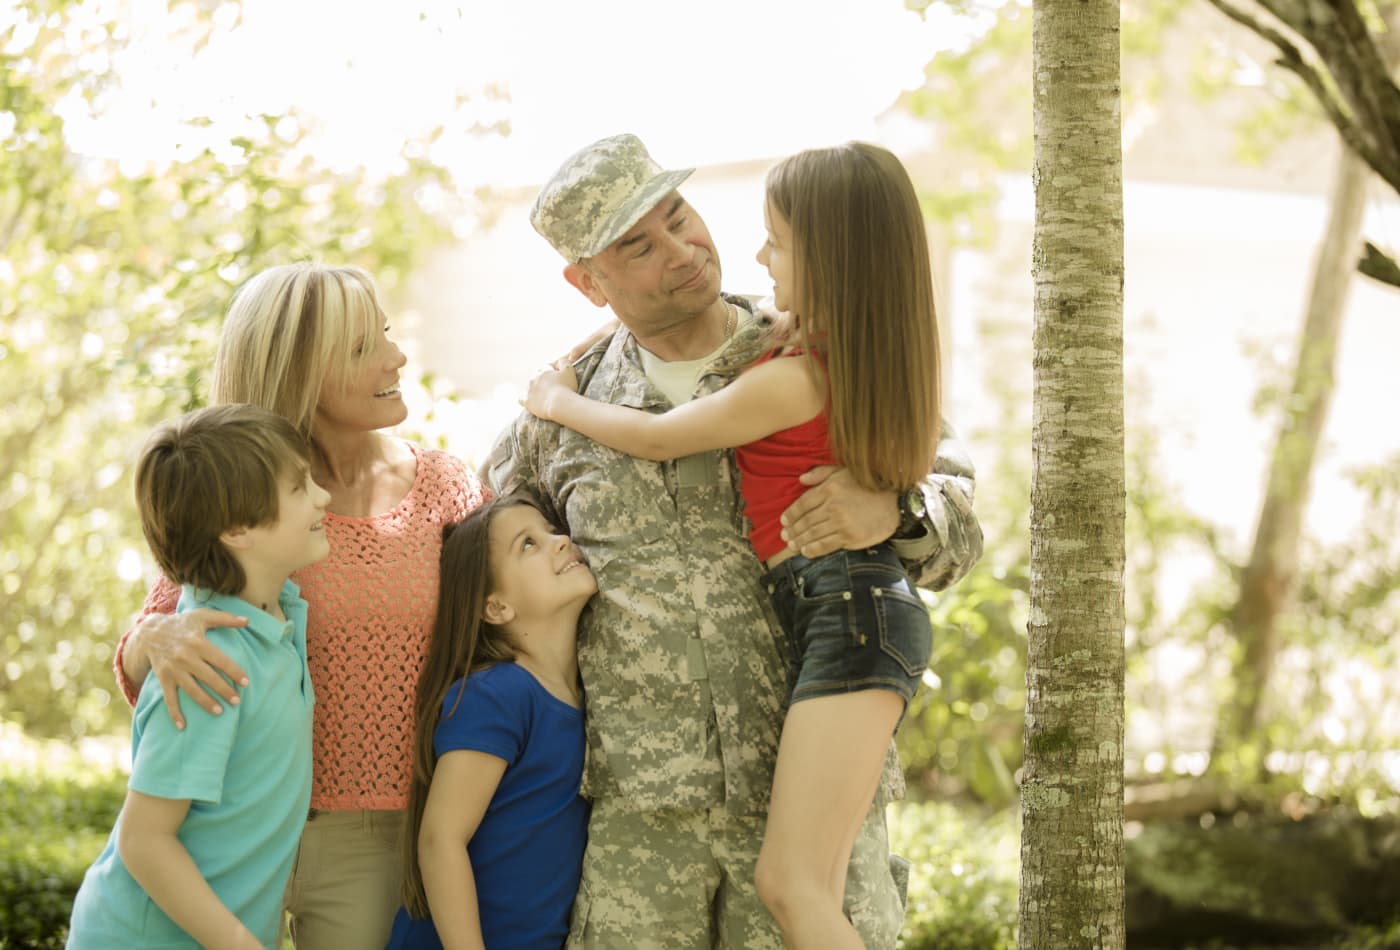 Key ways to drastically build your wealth during a military deployment